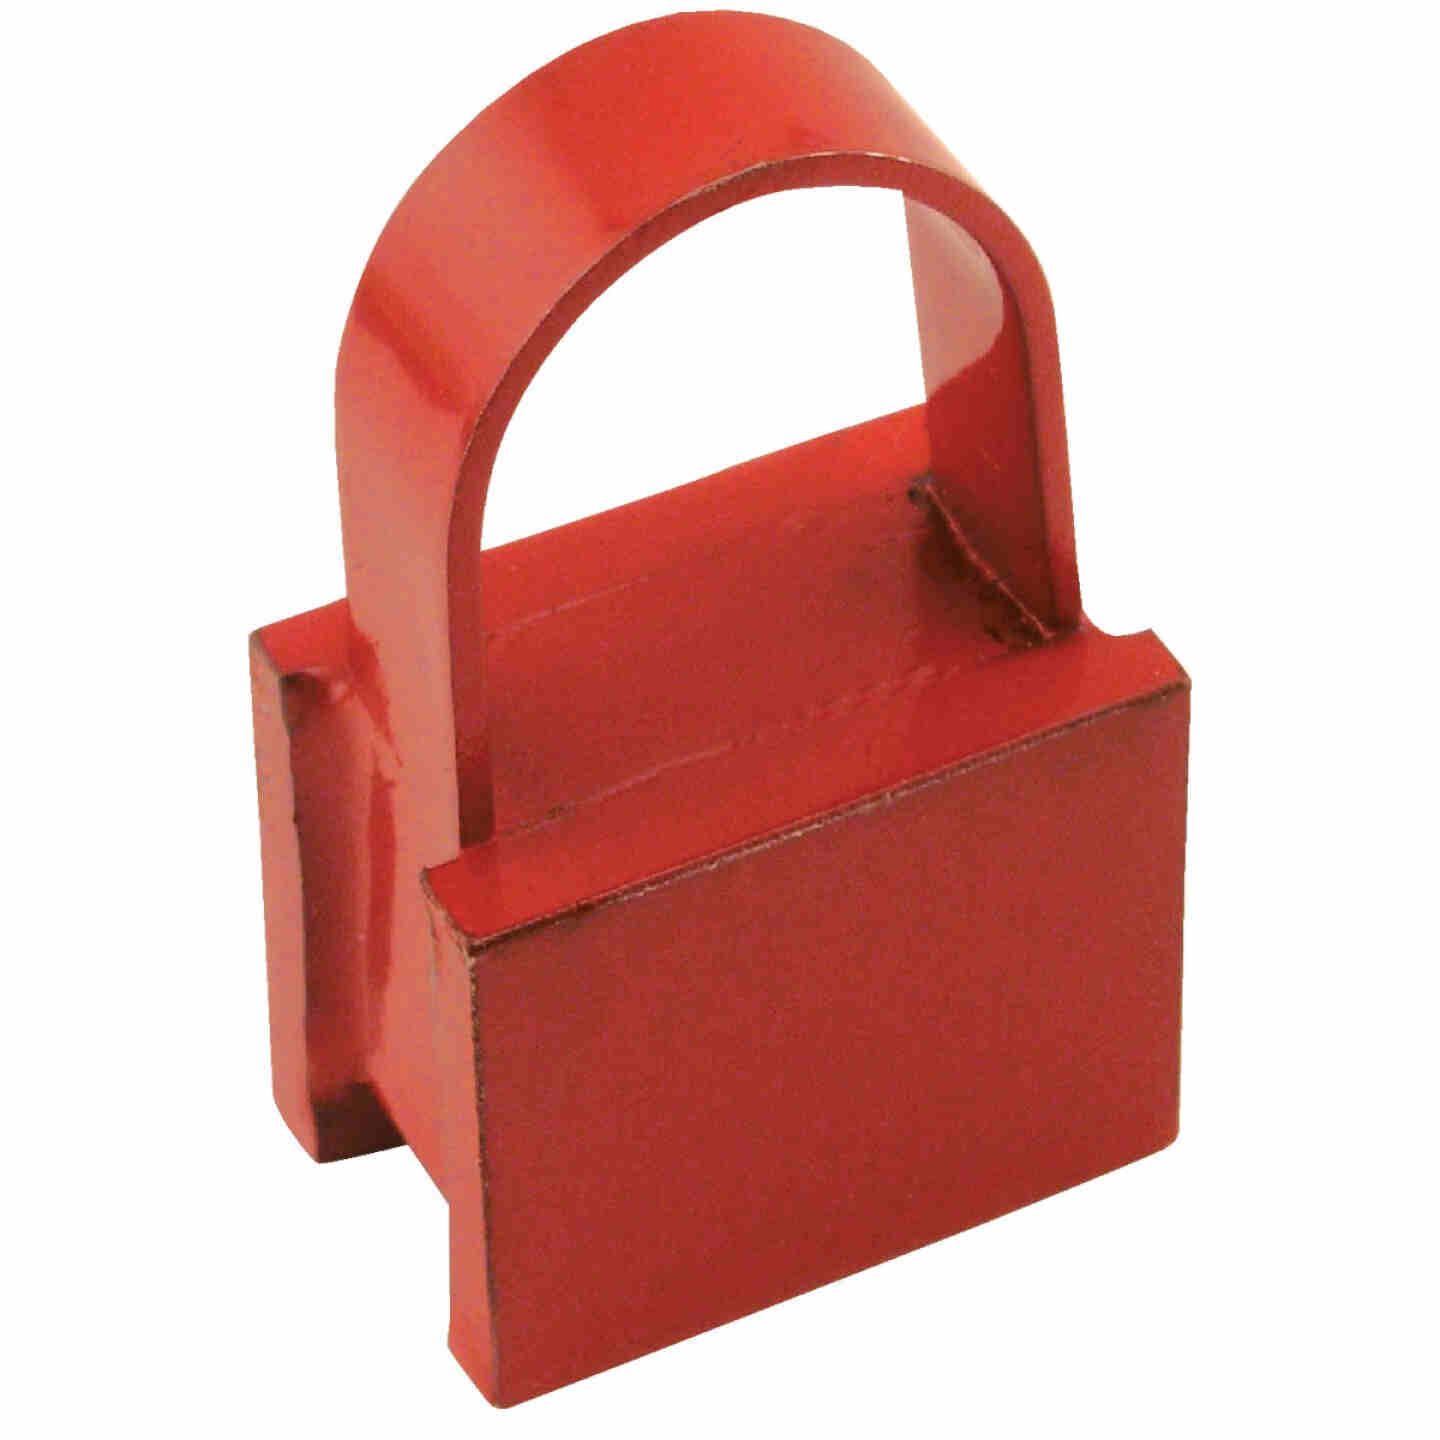 Master Magnetics 1-1/16 in. 3/4 in. 1 in. Handle Magnet Image 1